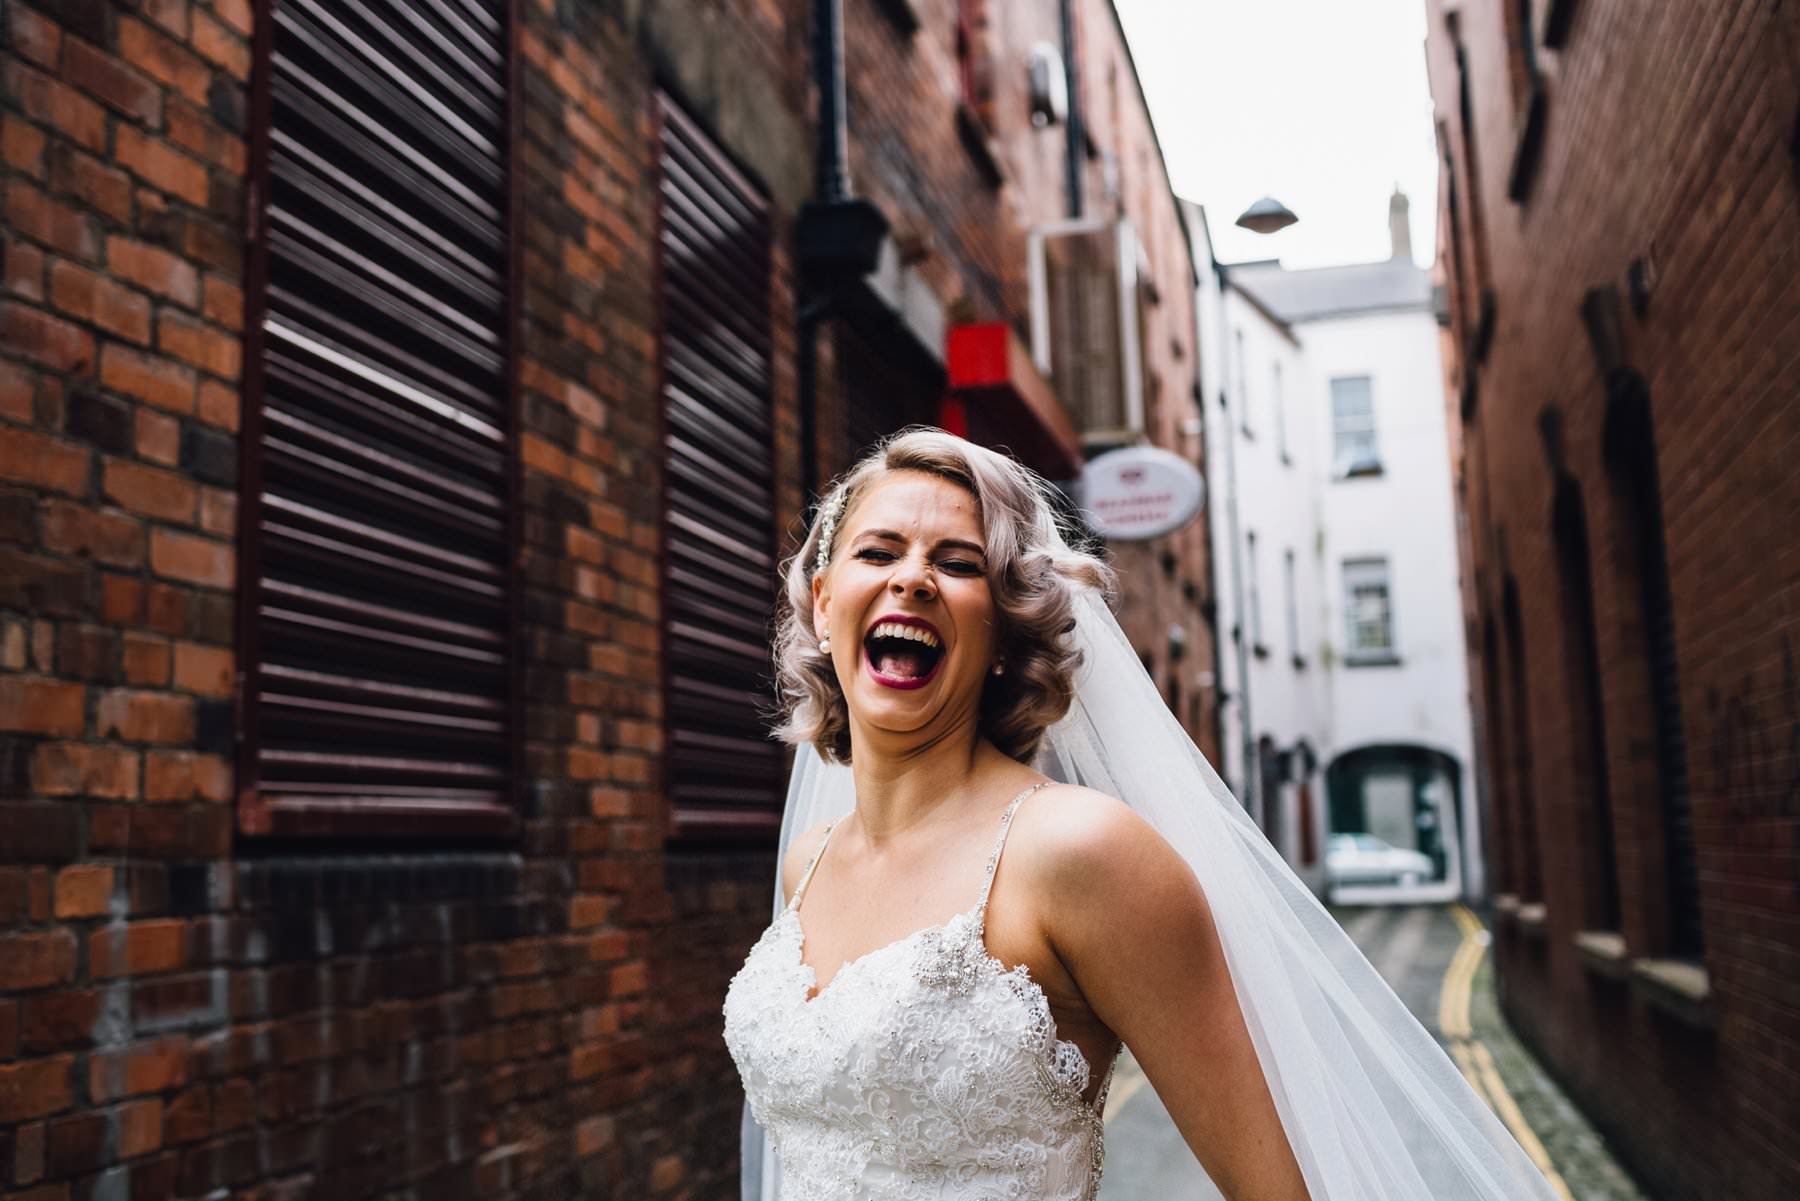 portrait of laughing bride wedding photography belfast northern ireland